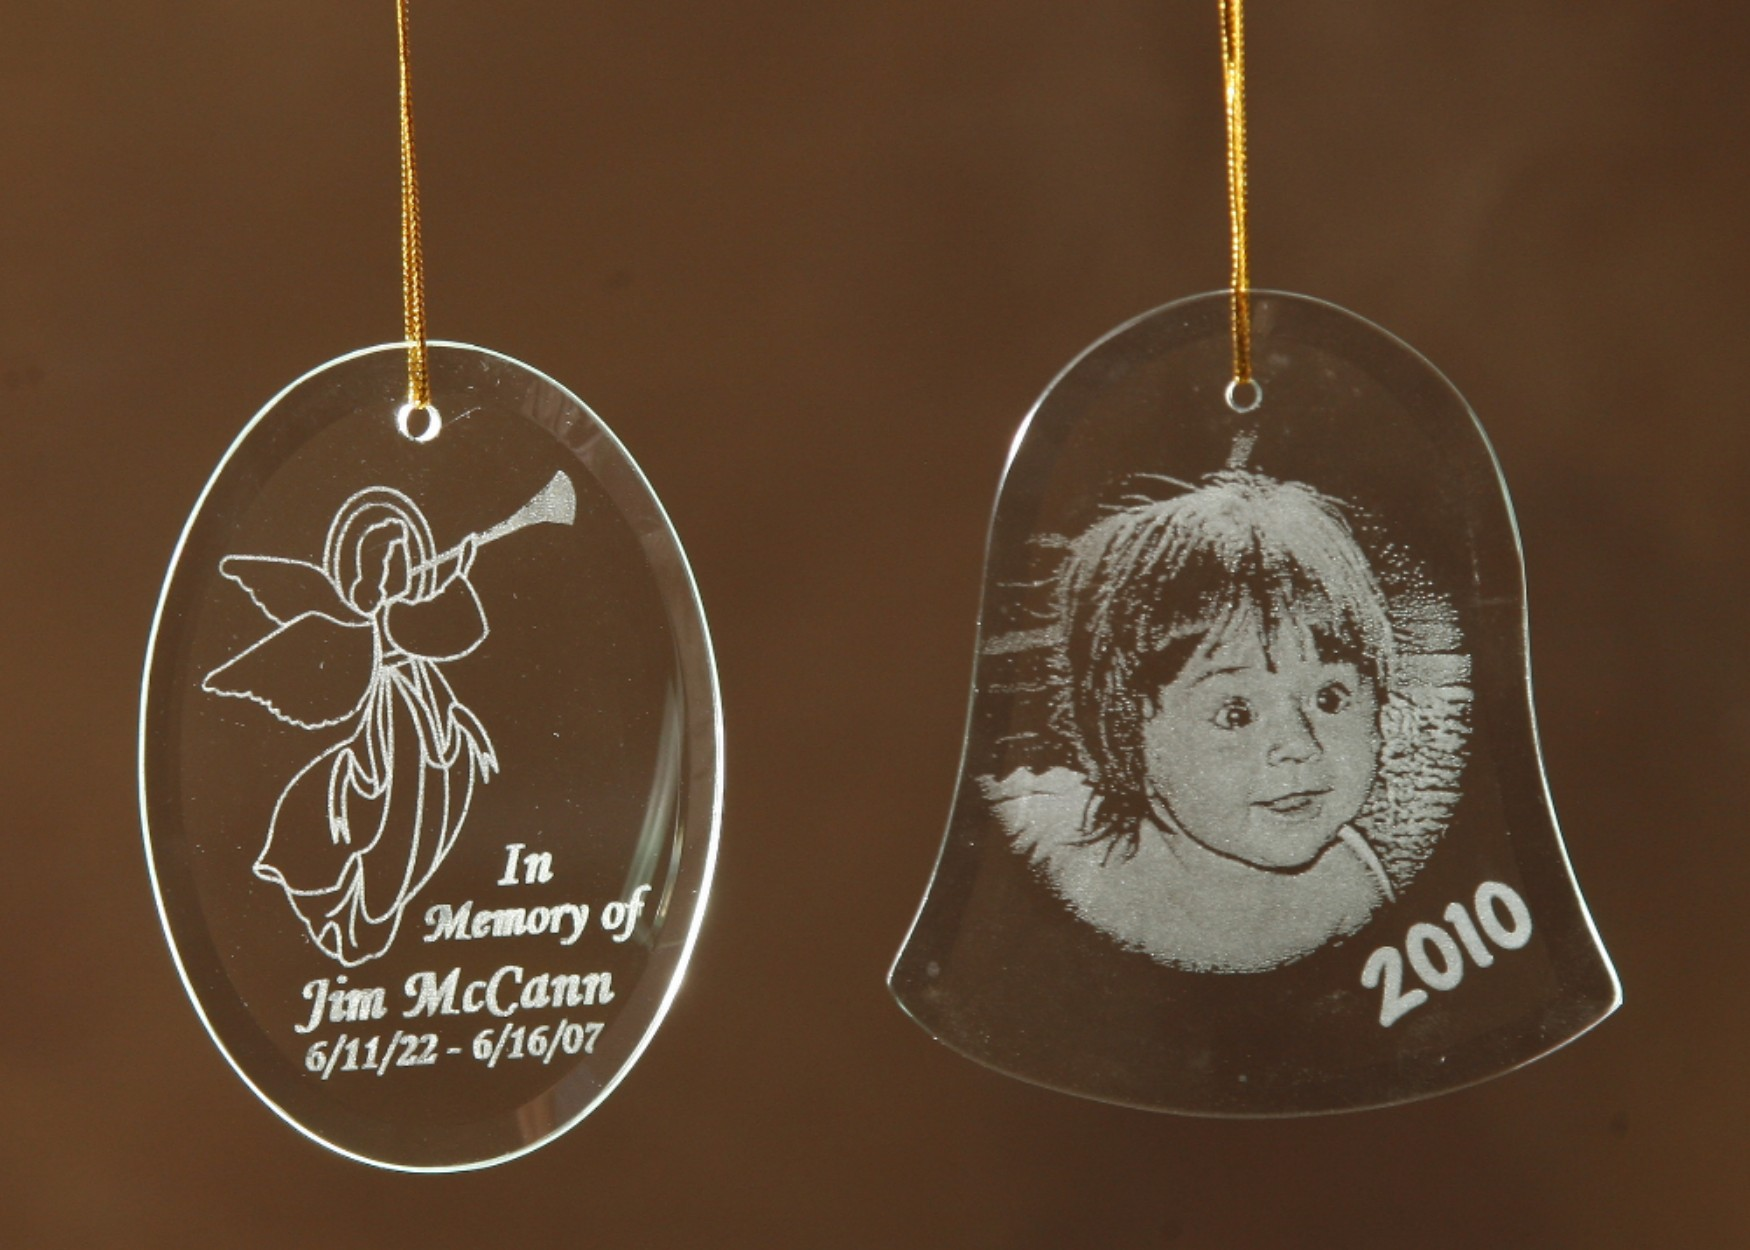 Engraved glass ornaments - Our Beveled Glass Ornaments Can Be Personalized With Any